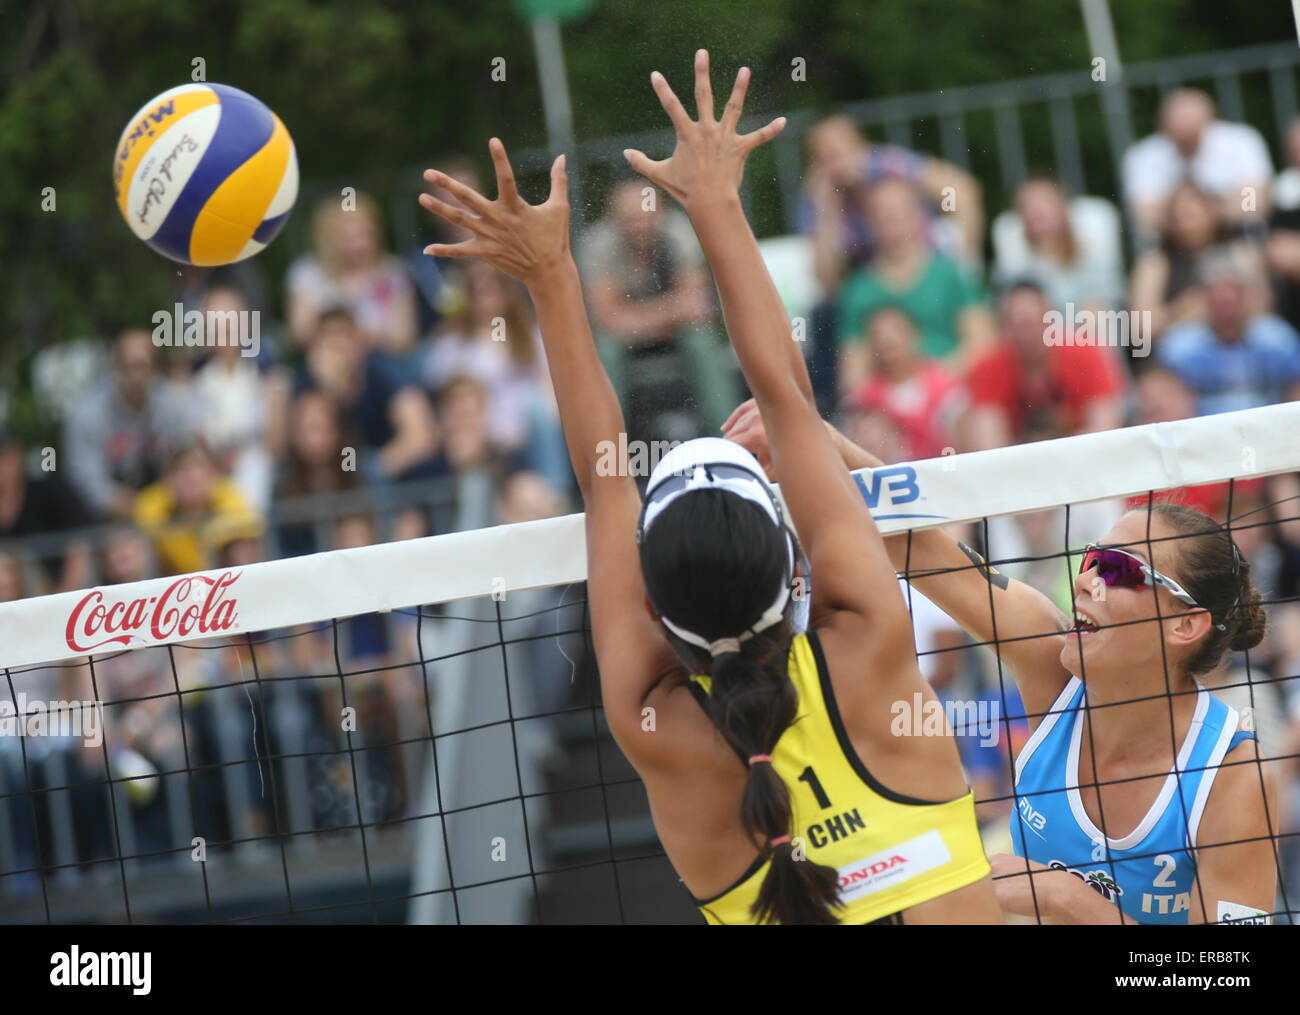 Moscow, Russia. 31st May, 2015. China's Fan Wang (L) blocks Italy's Viktoria Orsi Toth in their 2015 FIVB - Stock Image